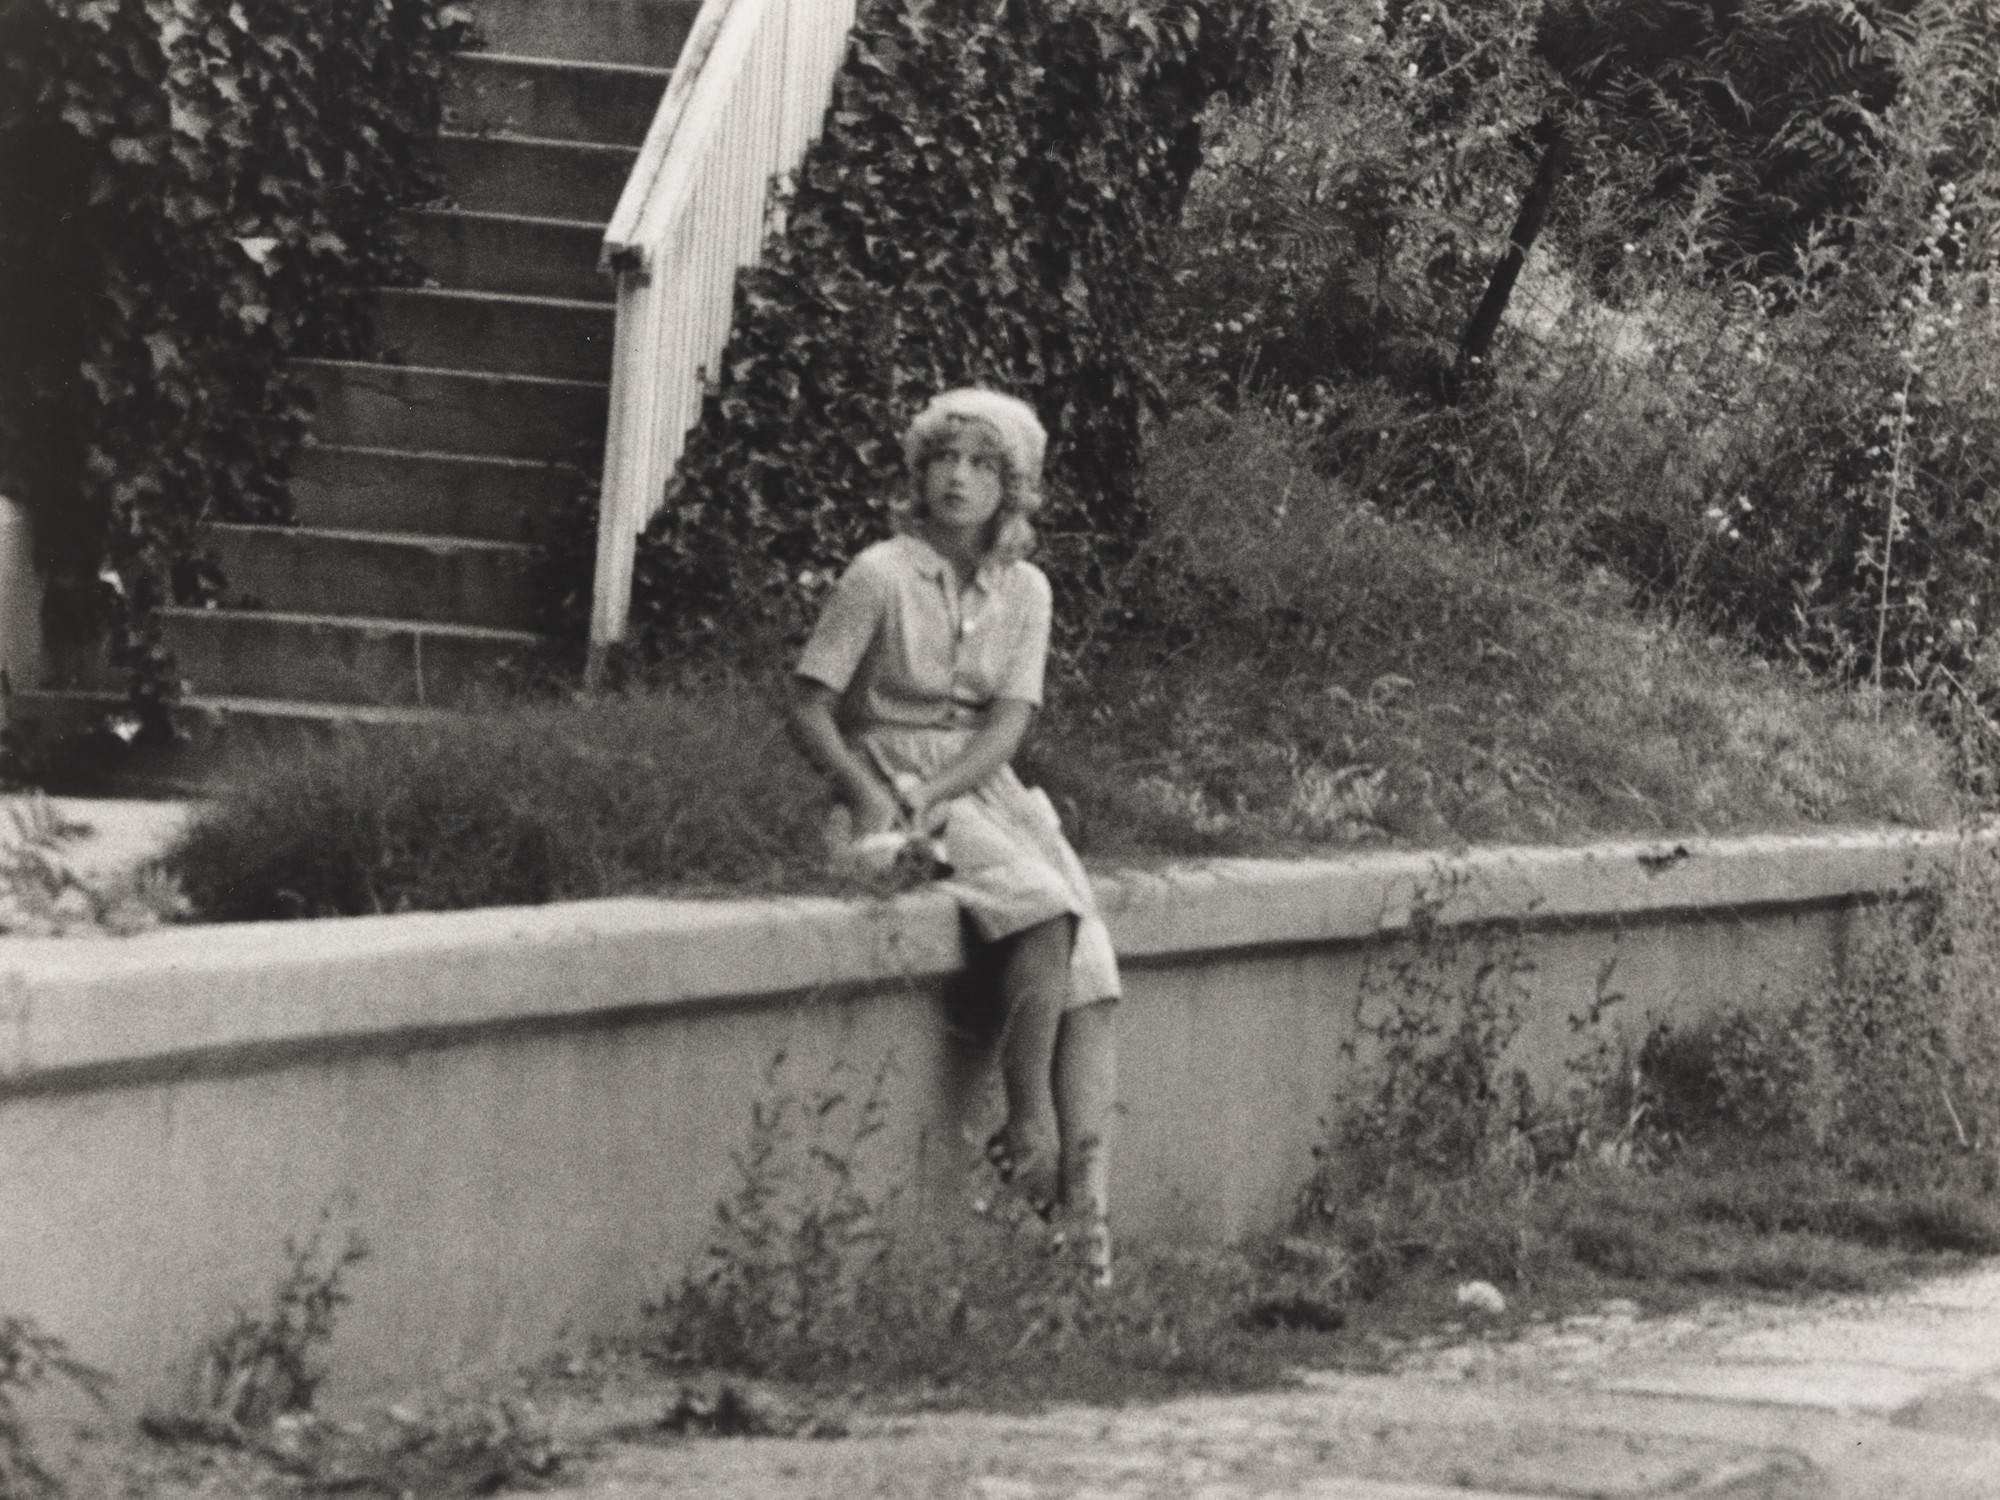 Cindy Sherman. Untitled Film Still #47. 1979